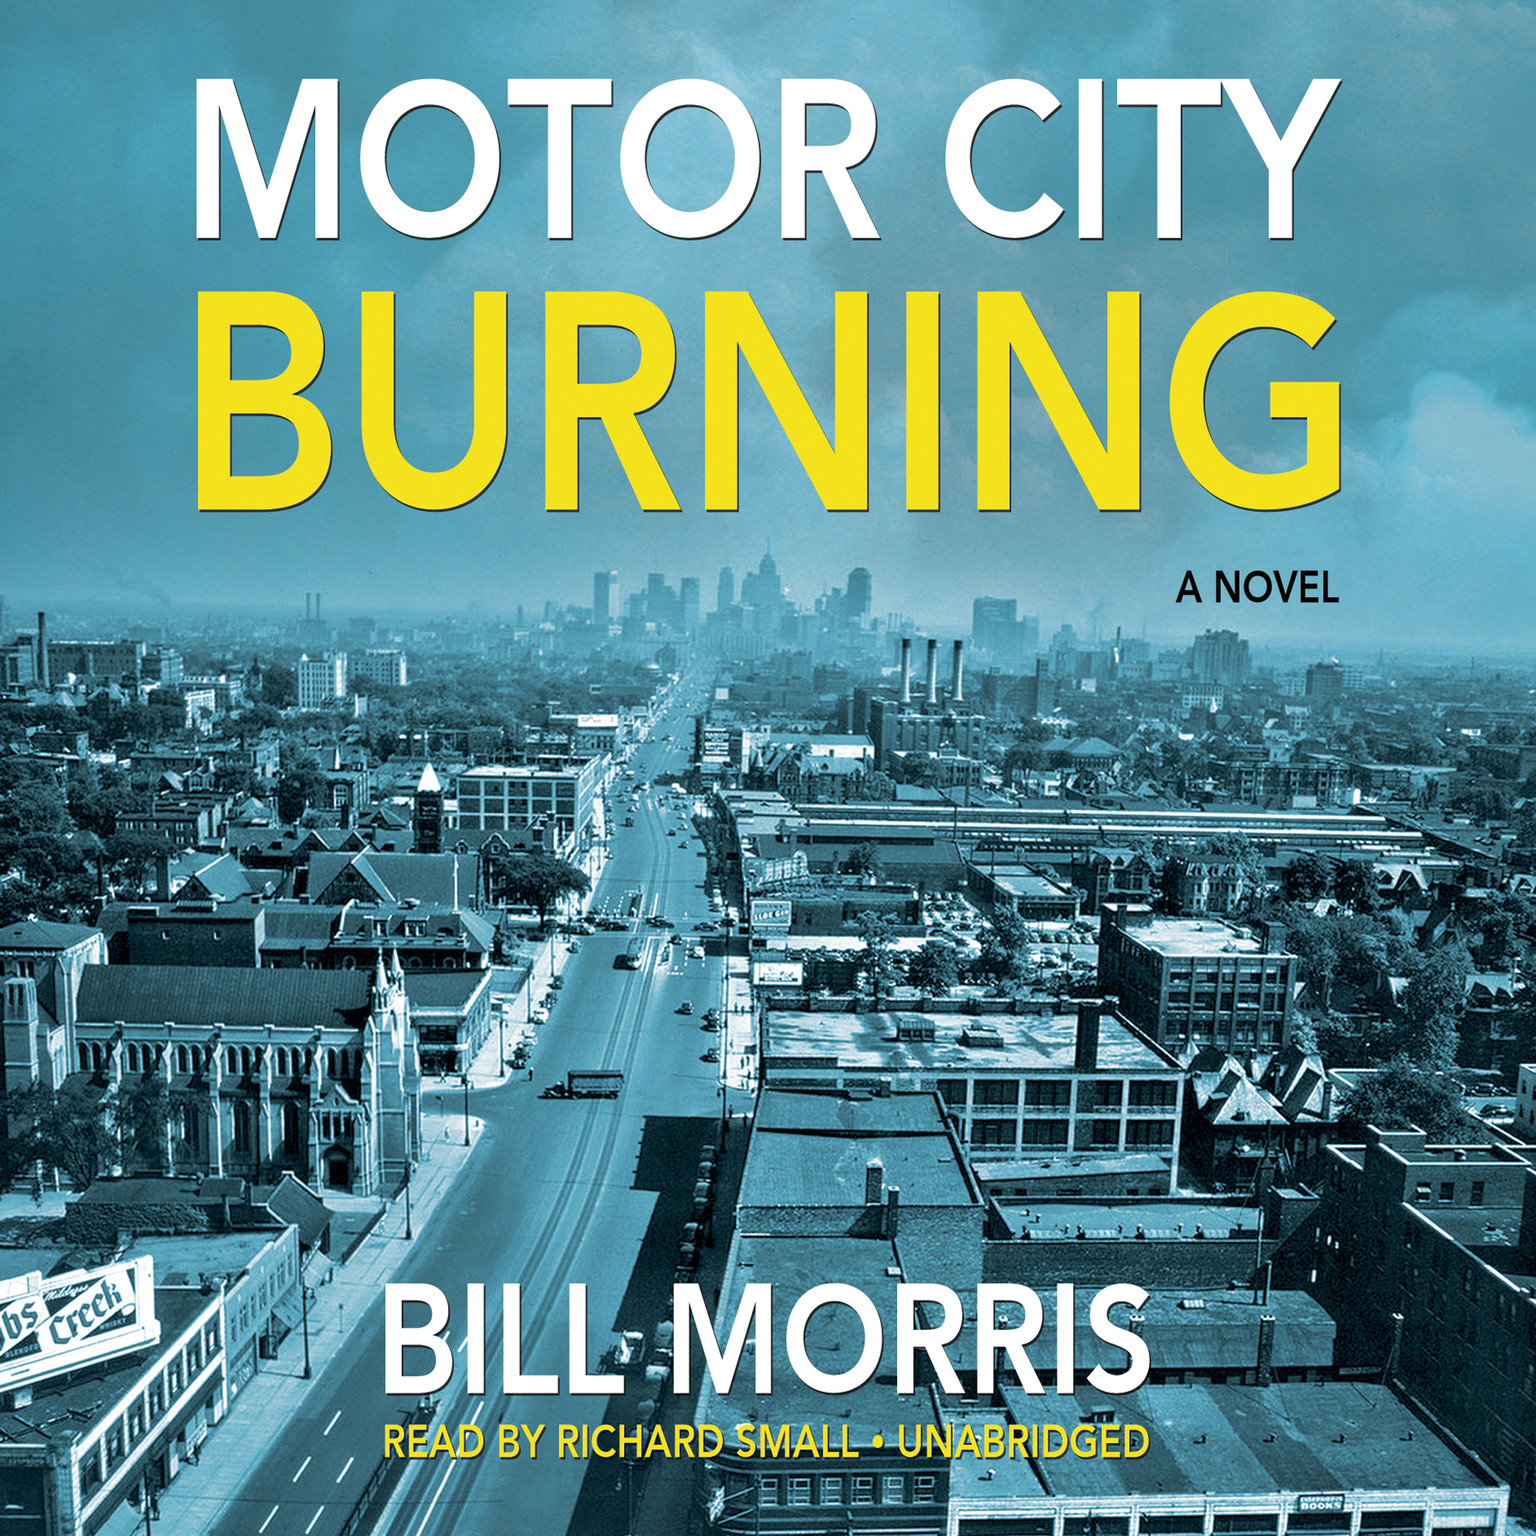 Download Motor City Burning Audiobook By Bill Morris For